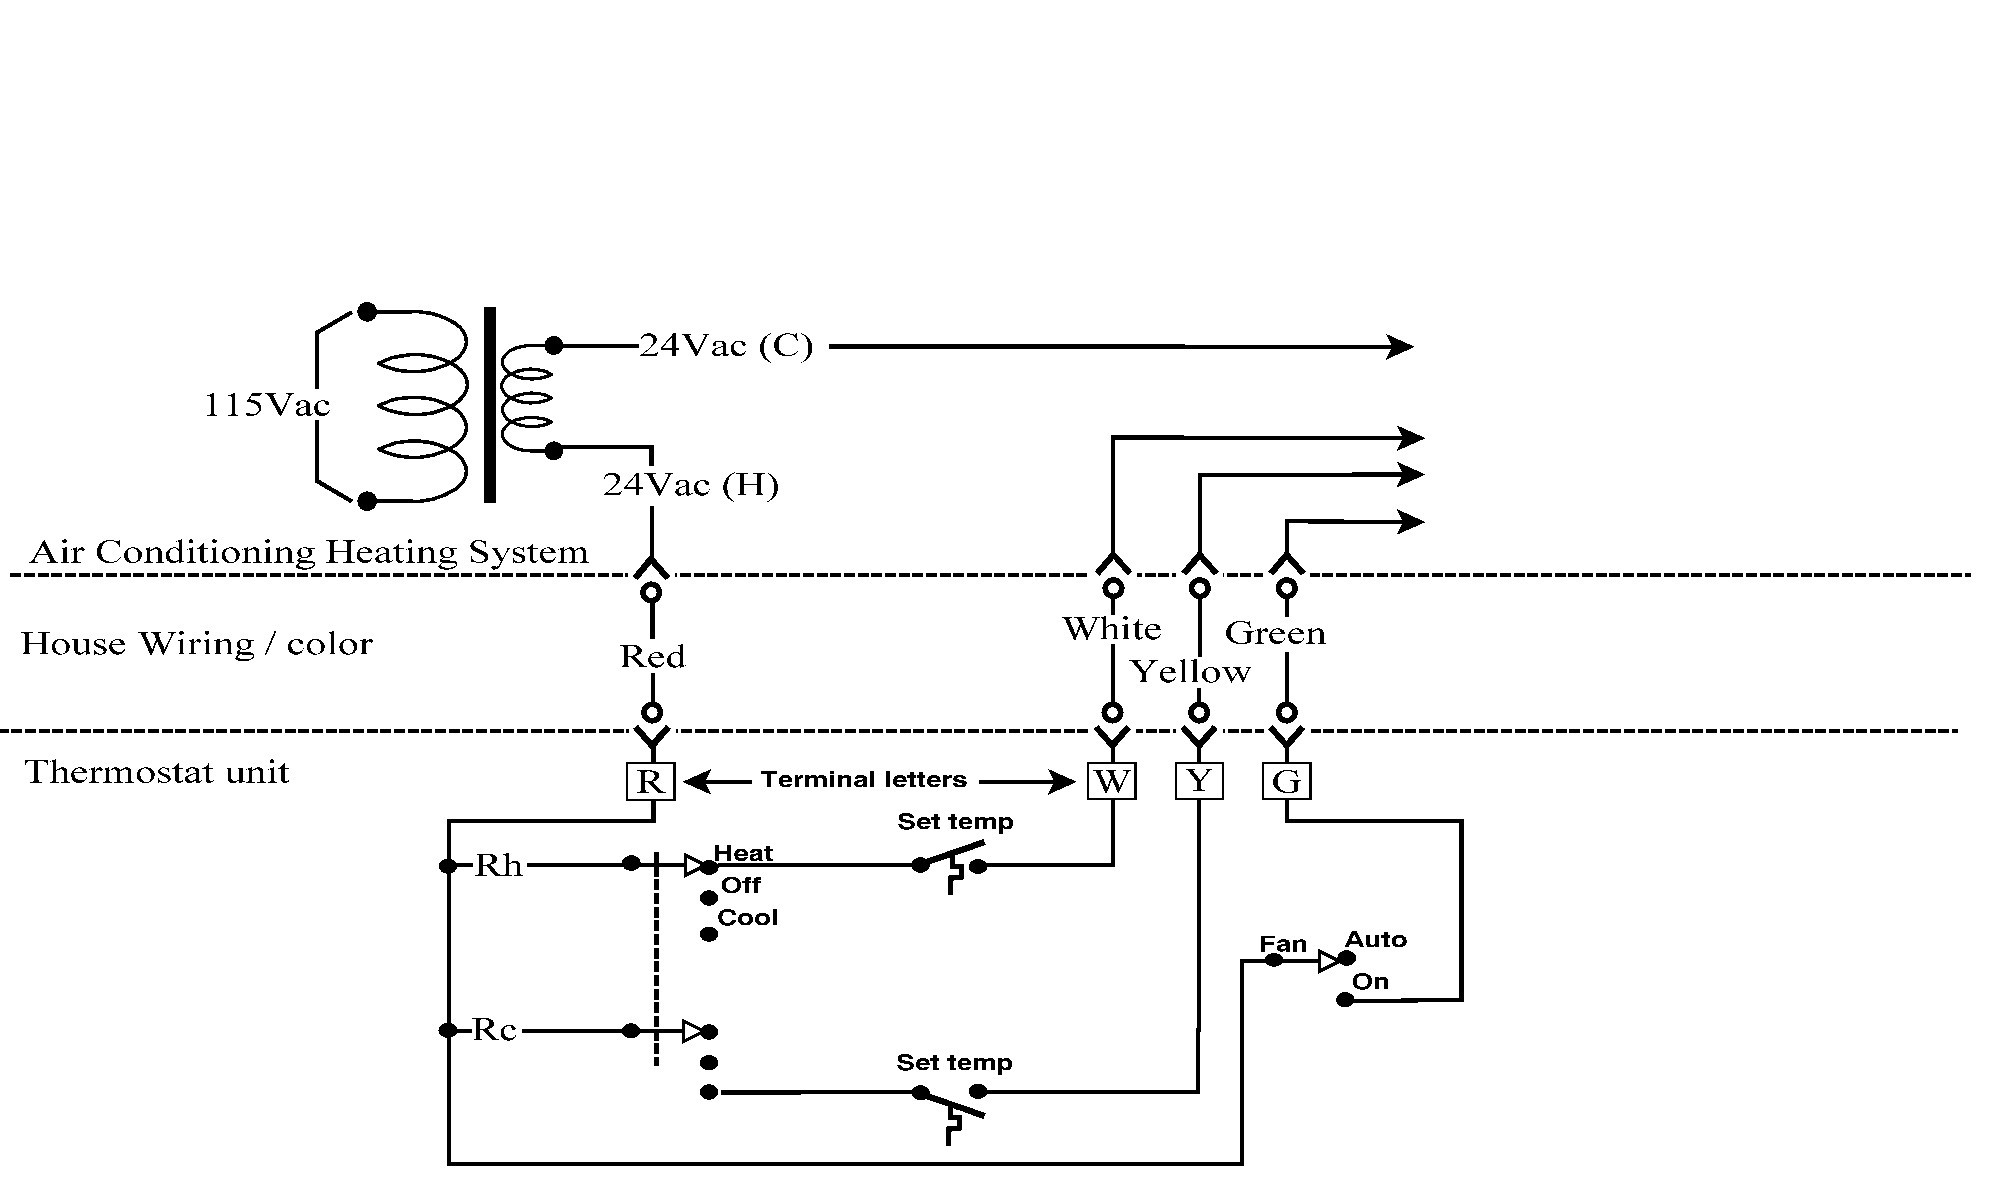 Nest thermostat Wiring Diagram thermostat Signals and Wiring Showy Diagram Color Afif Of Nest thermostat Wiring Diagram